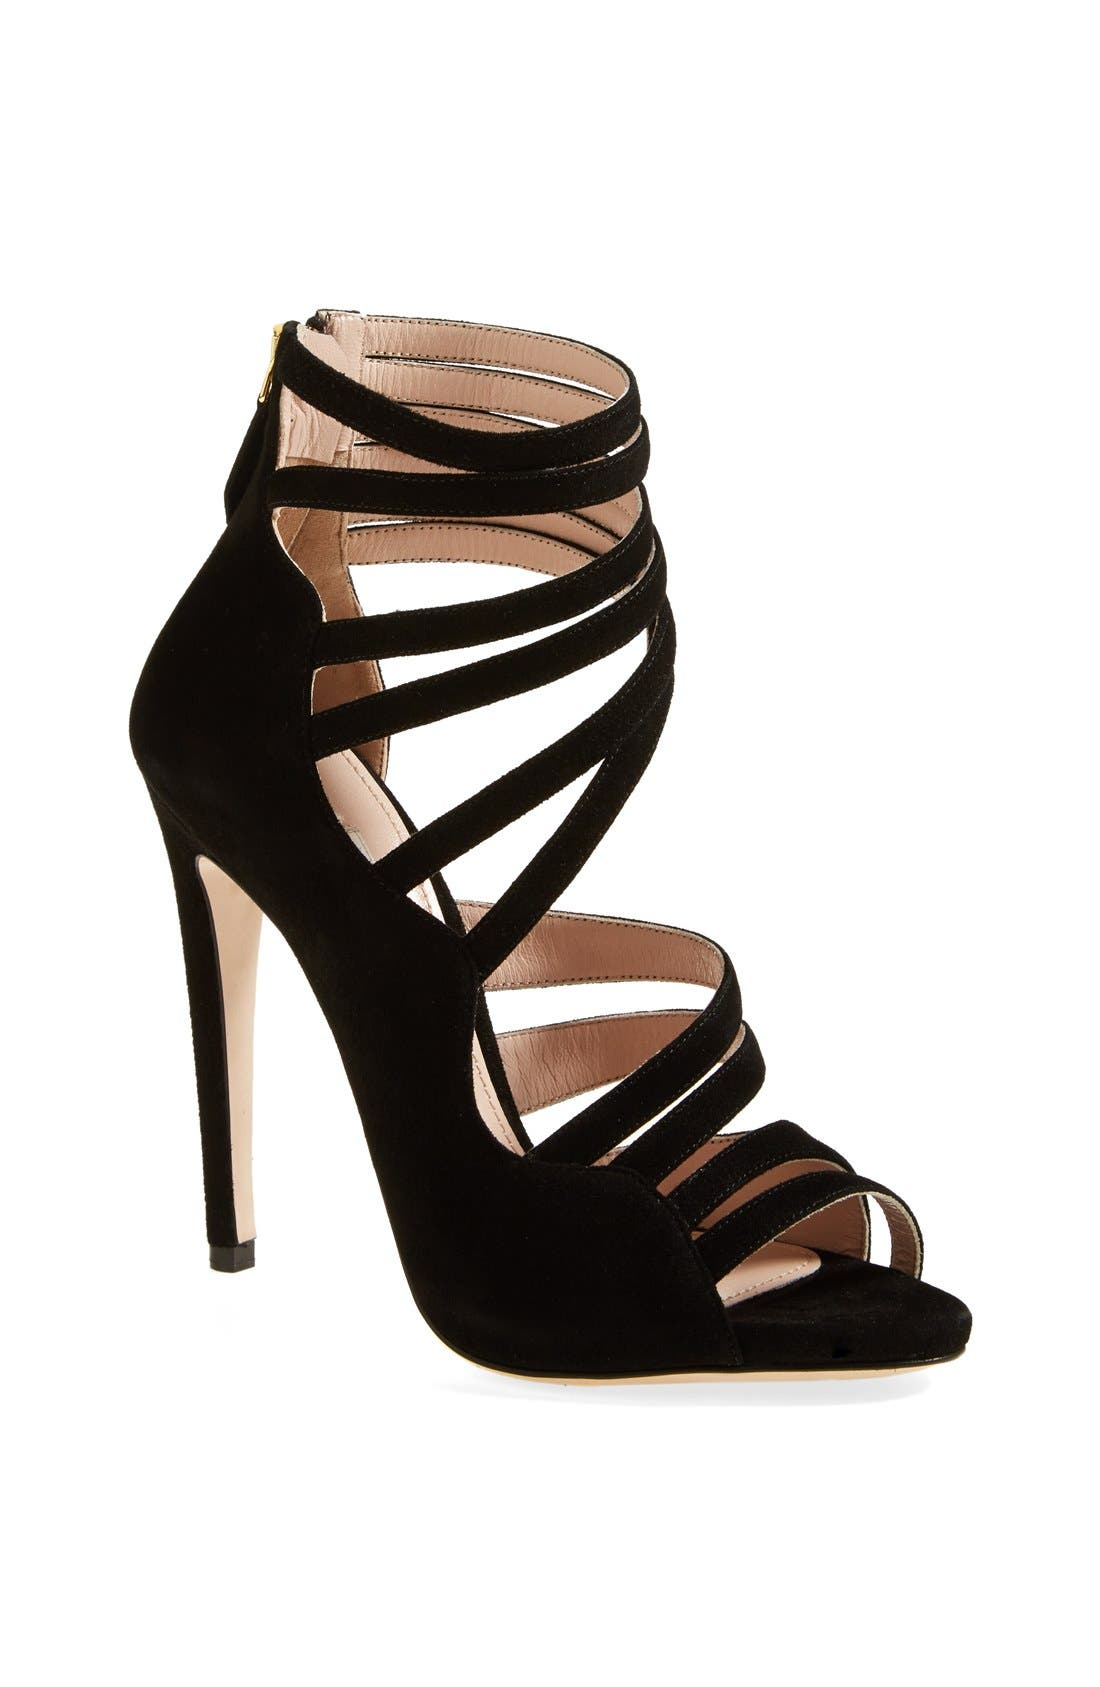 Alternate Image 1 Selected - Miu Miu Asymmetrical Strappy Sandal